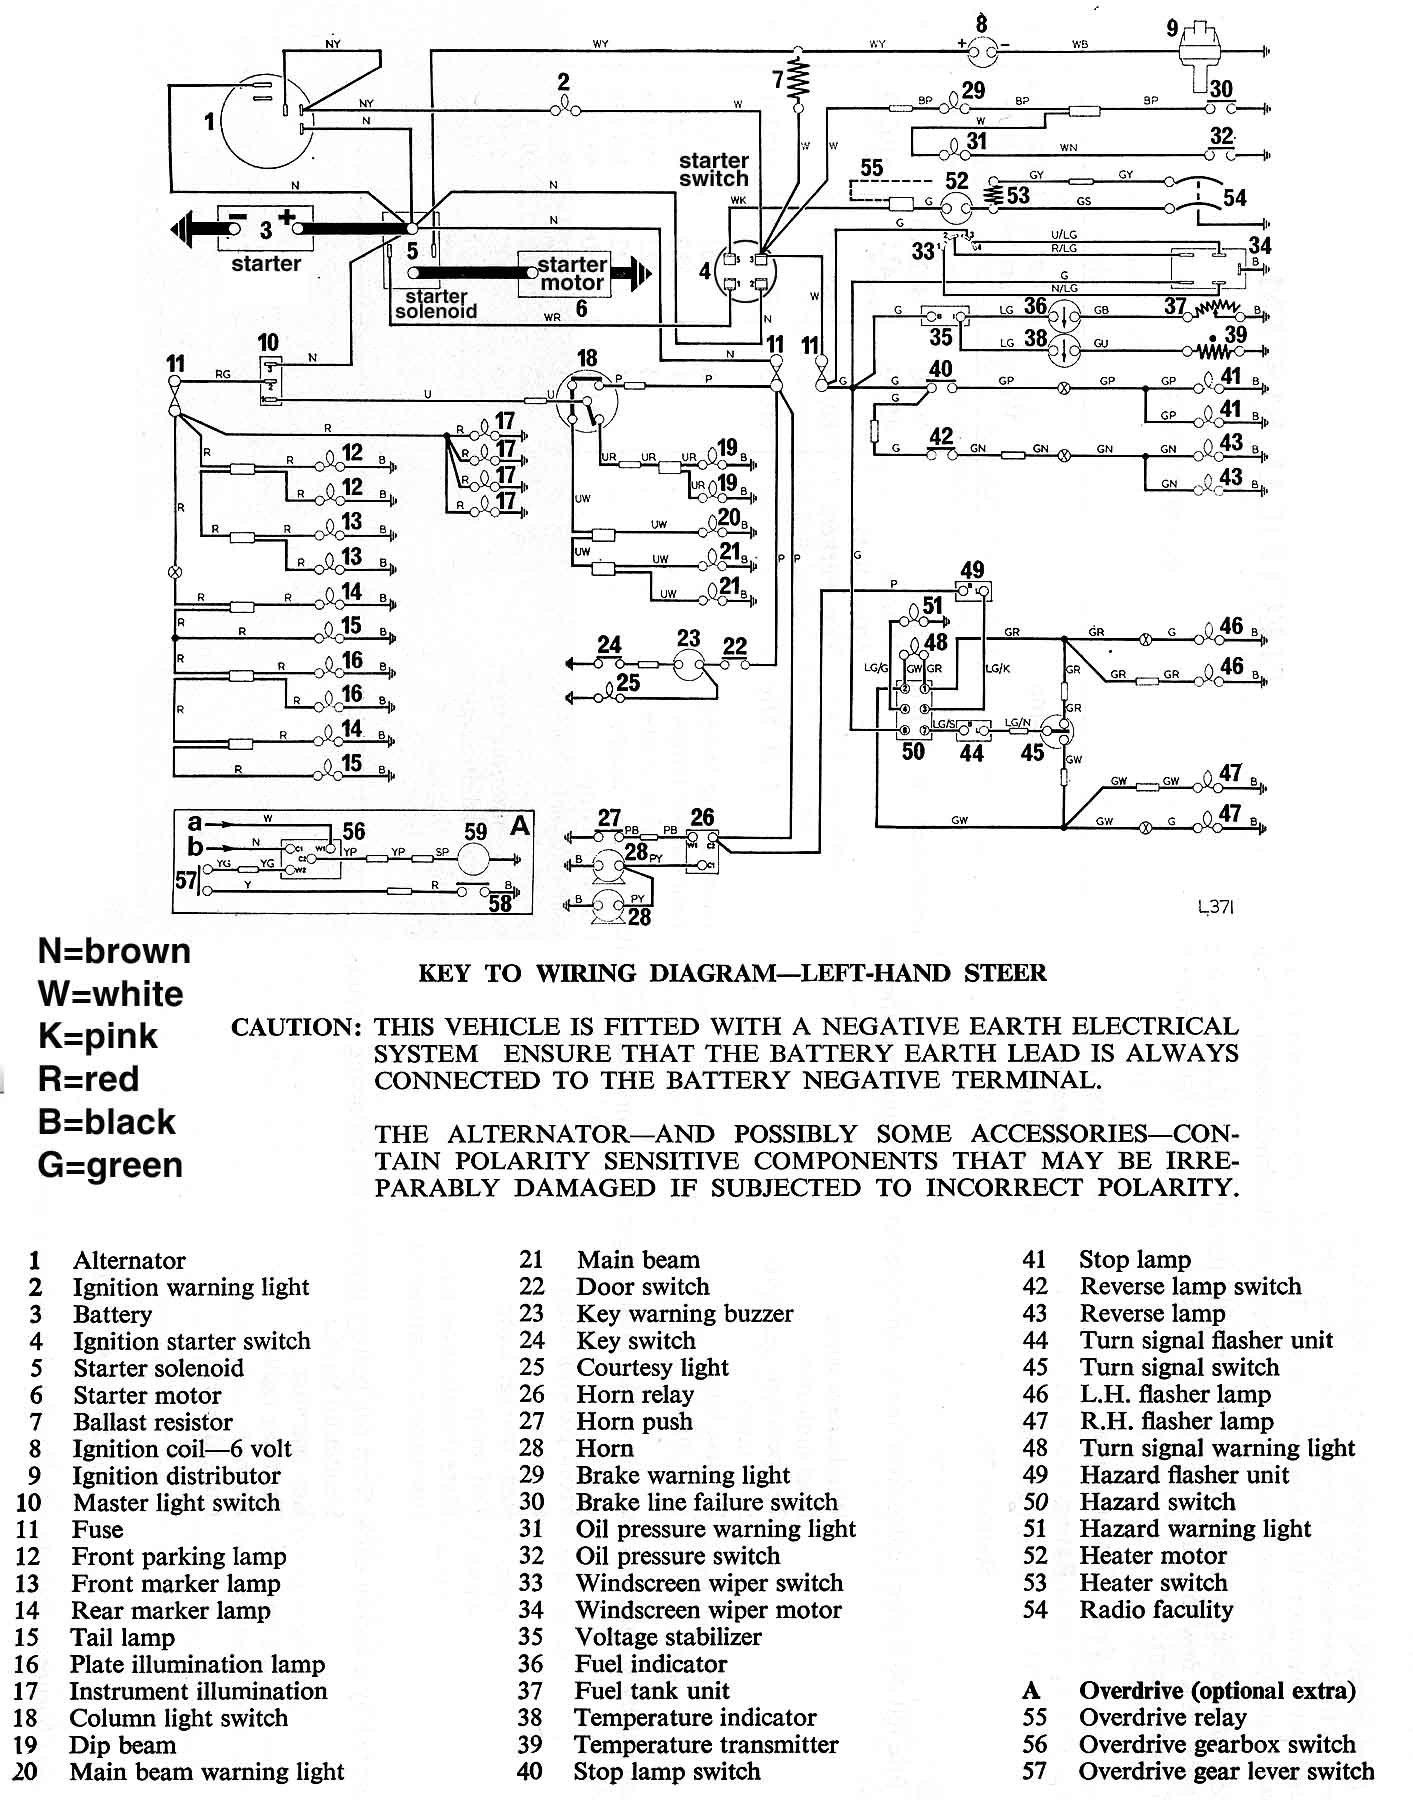 triumph tr6 pi wiring diagram 1989 gm radio ignition click and relay install tech forum